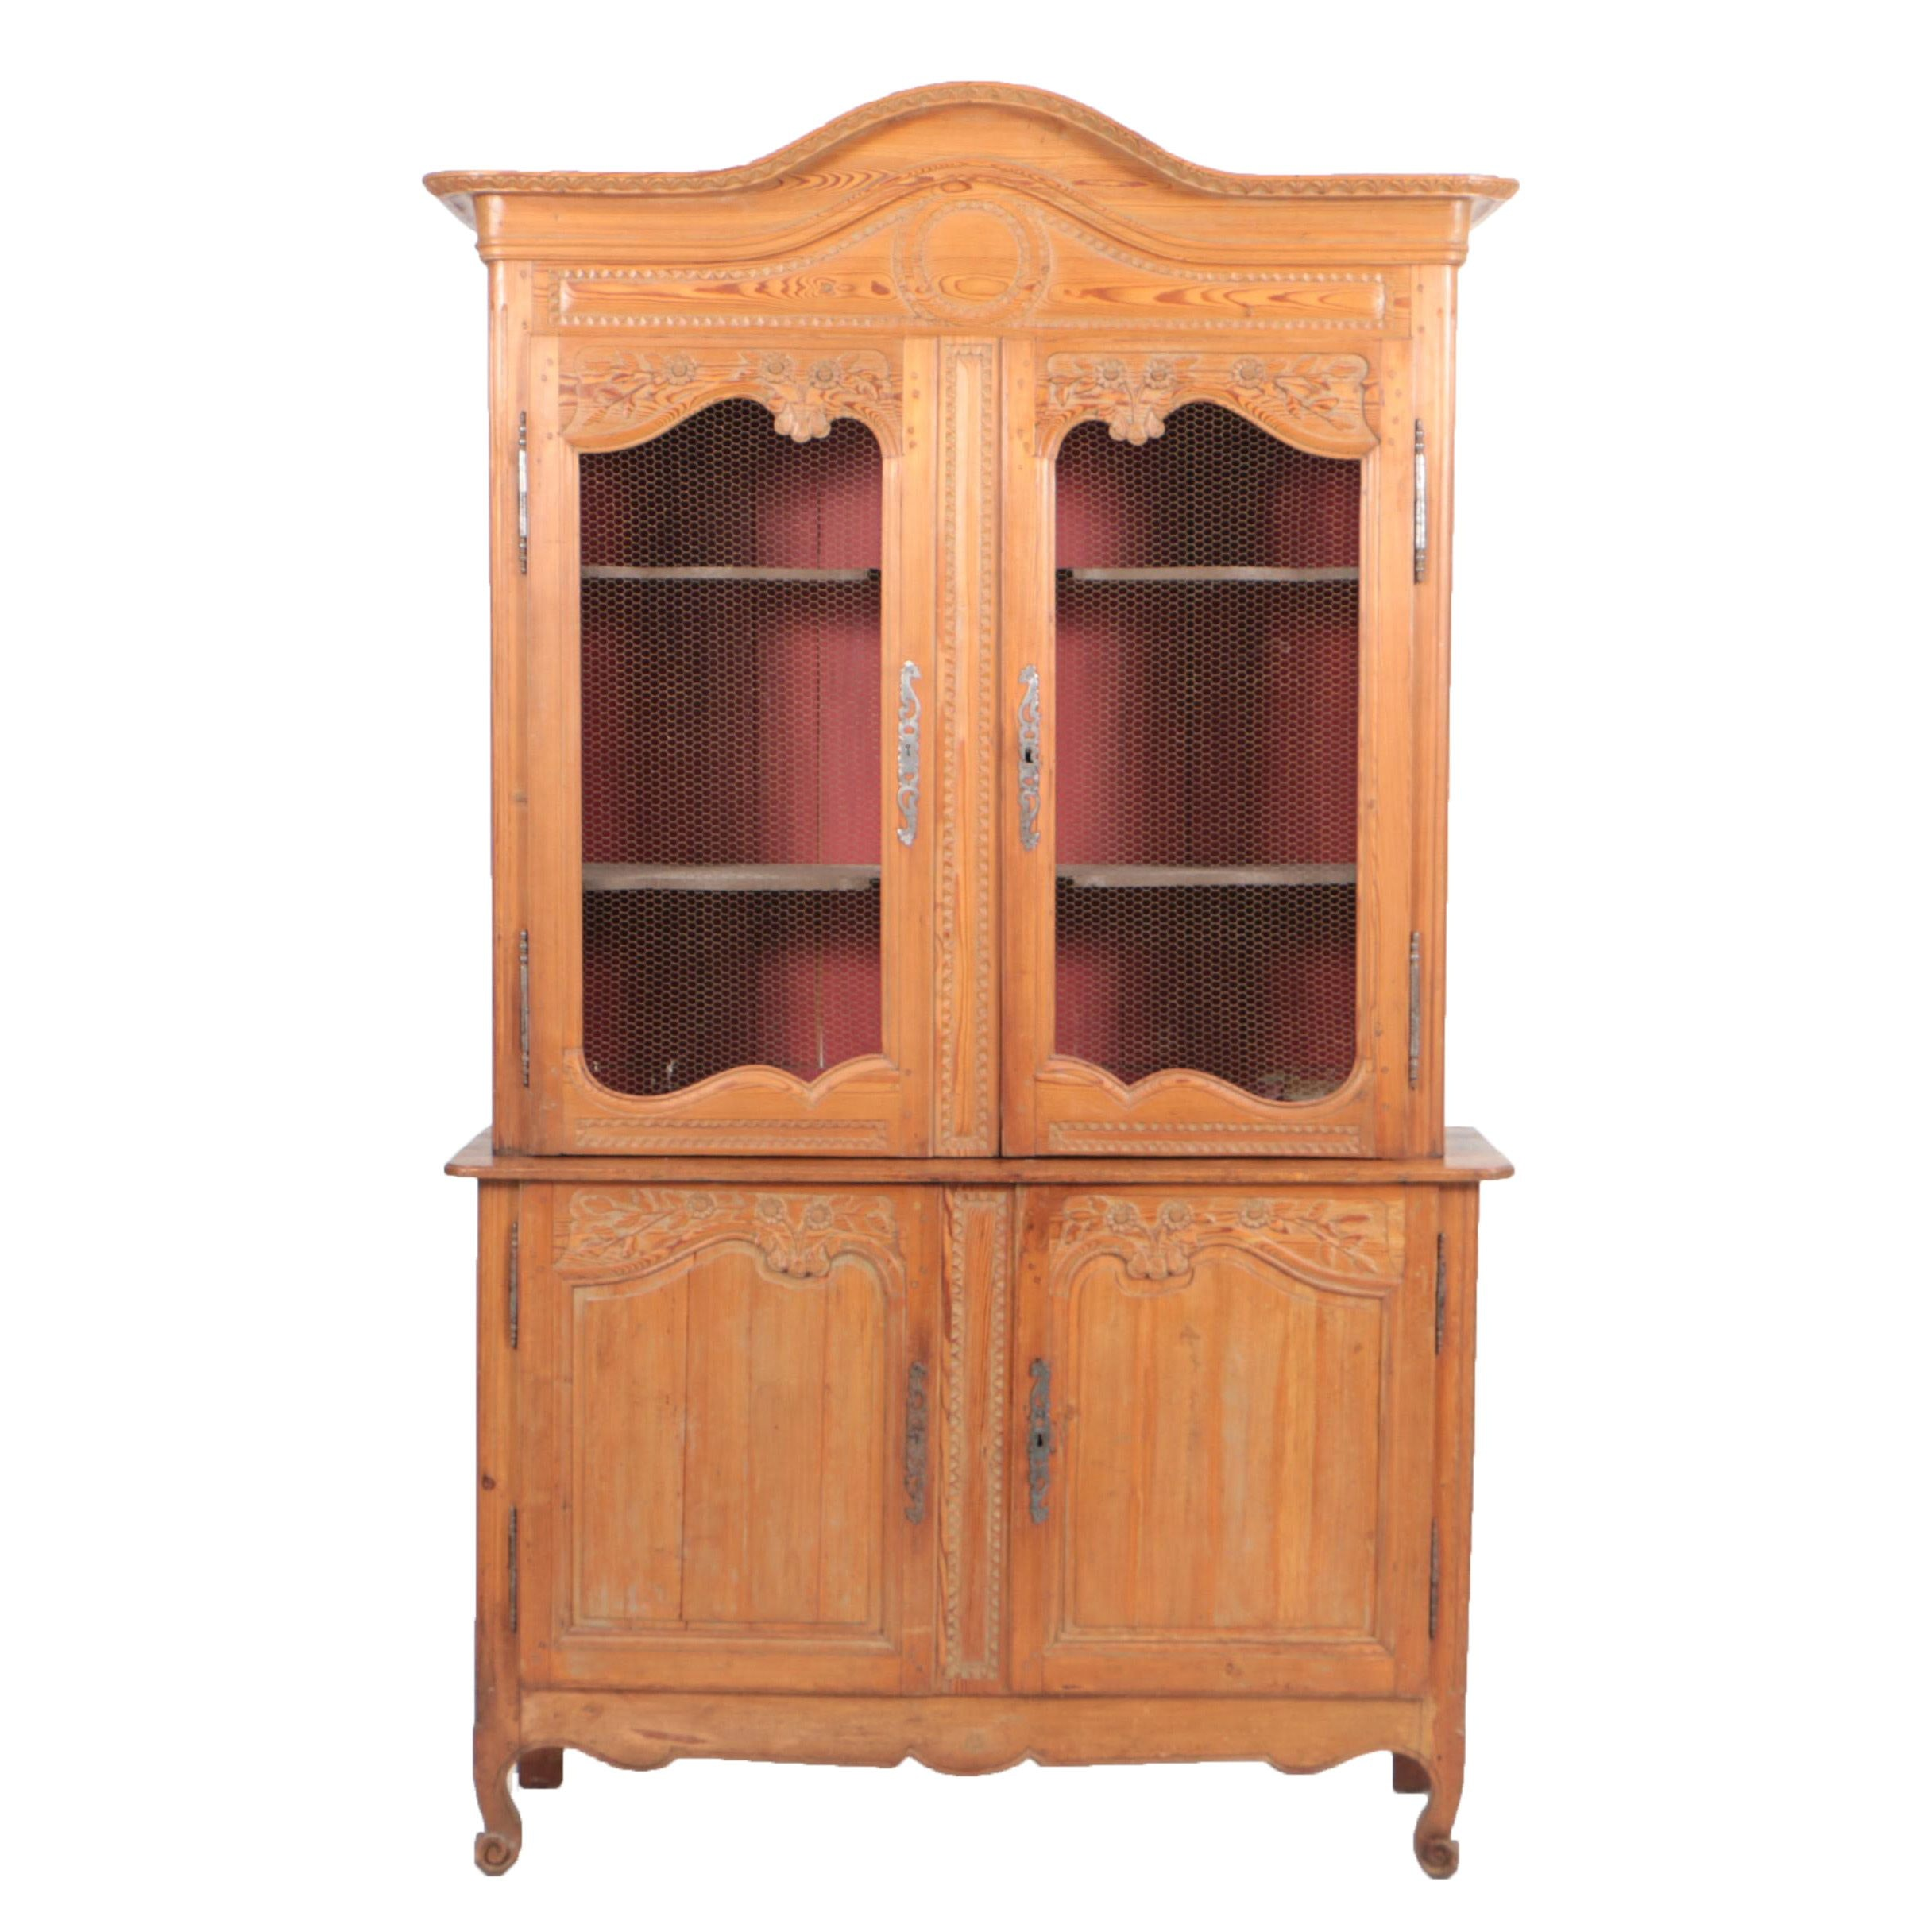 19th Century French Provincial Pine Cupboard